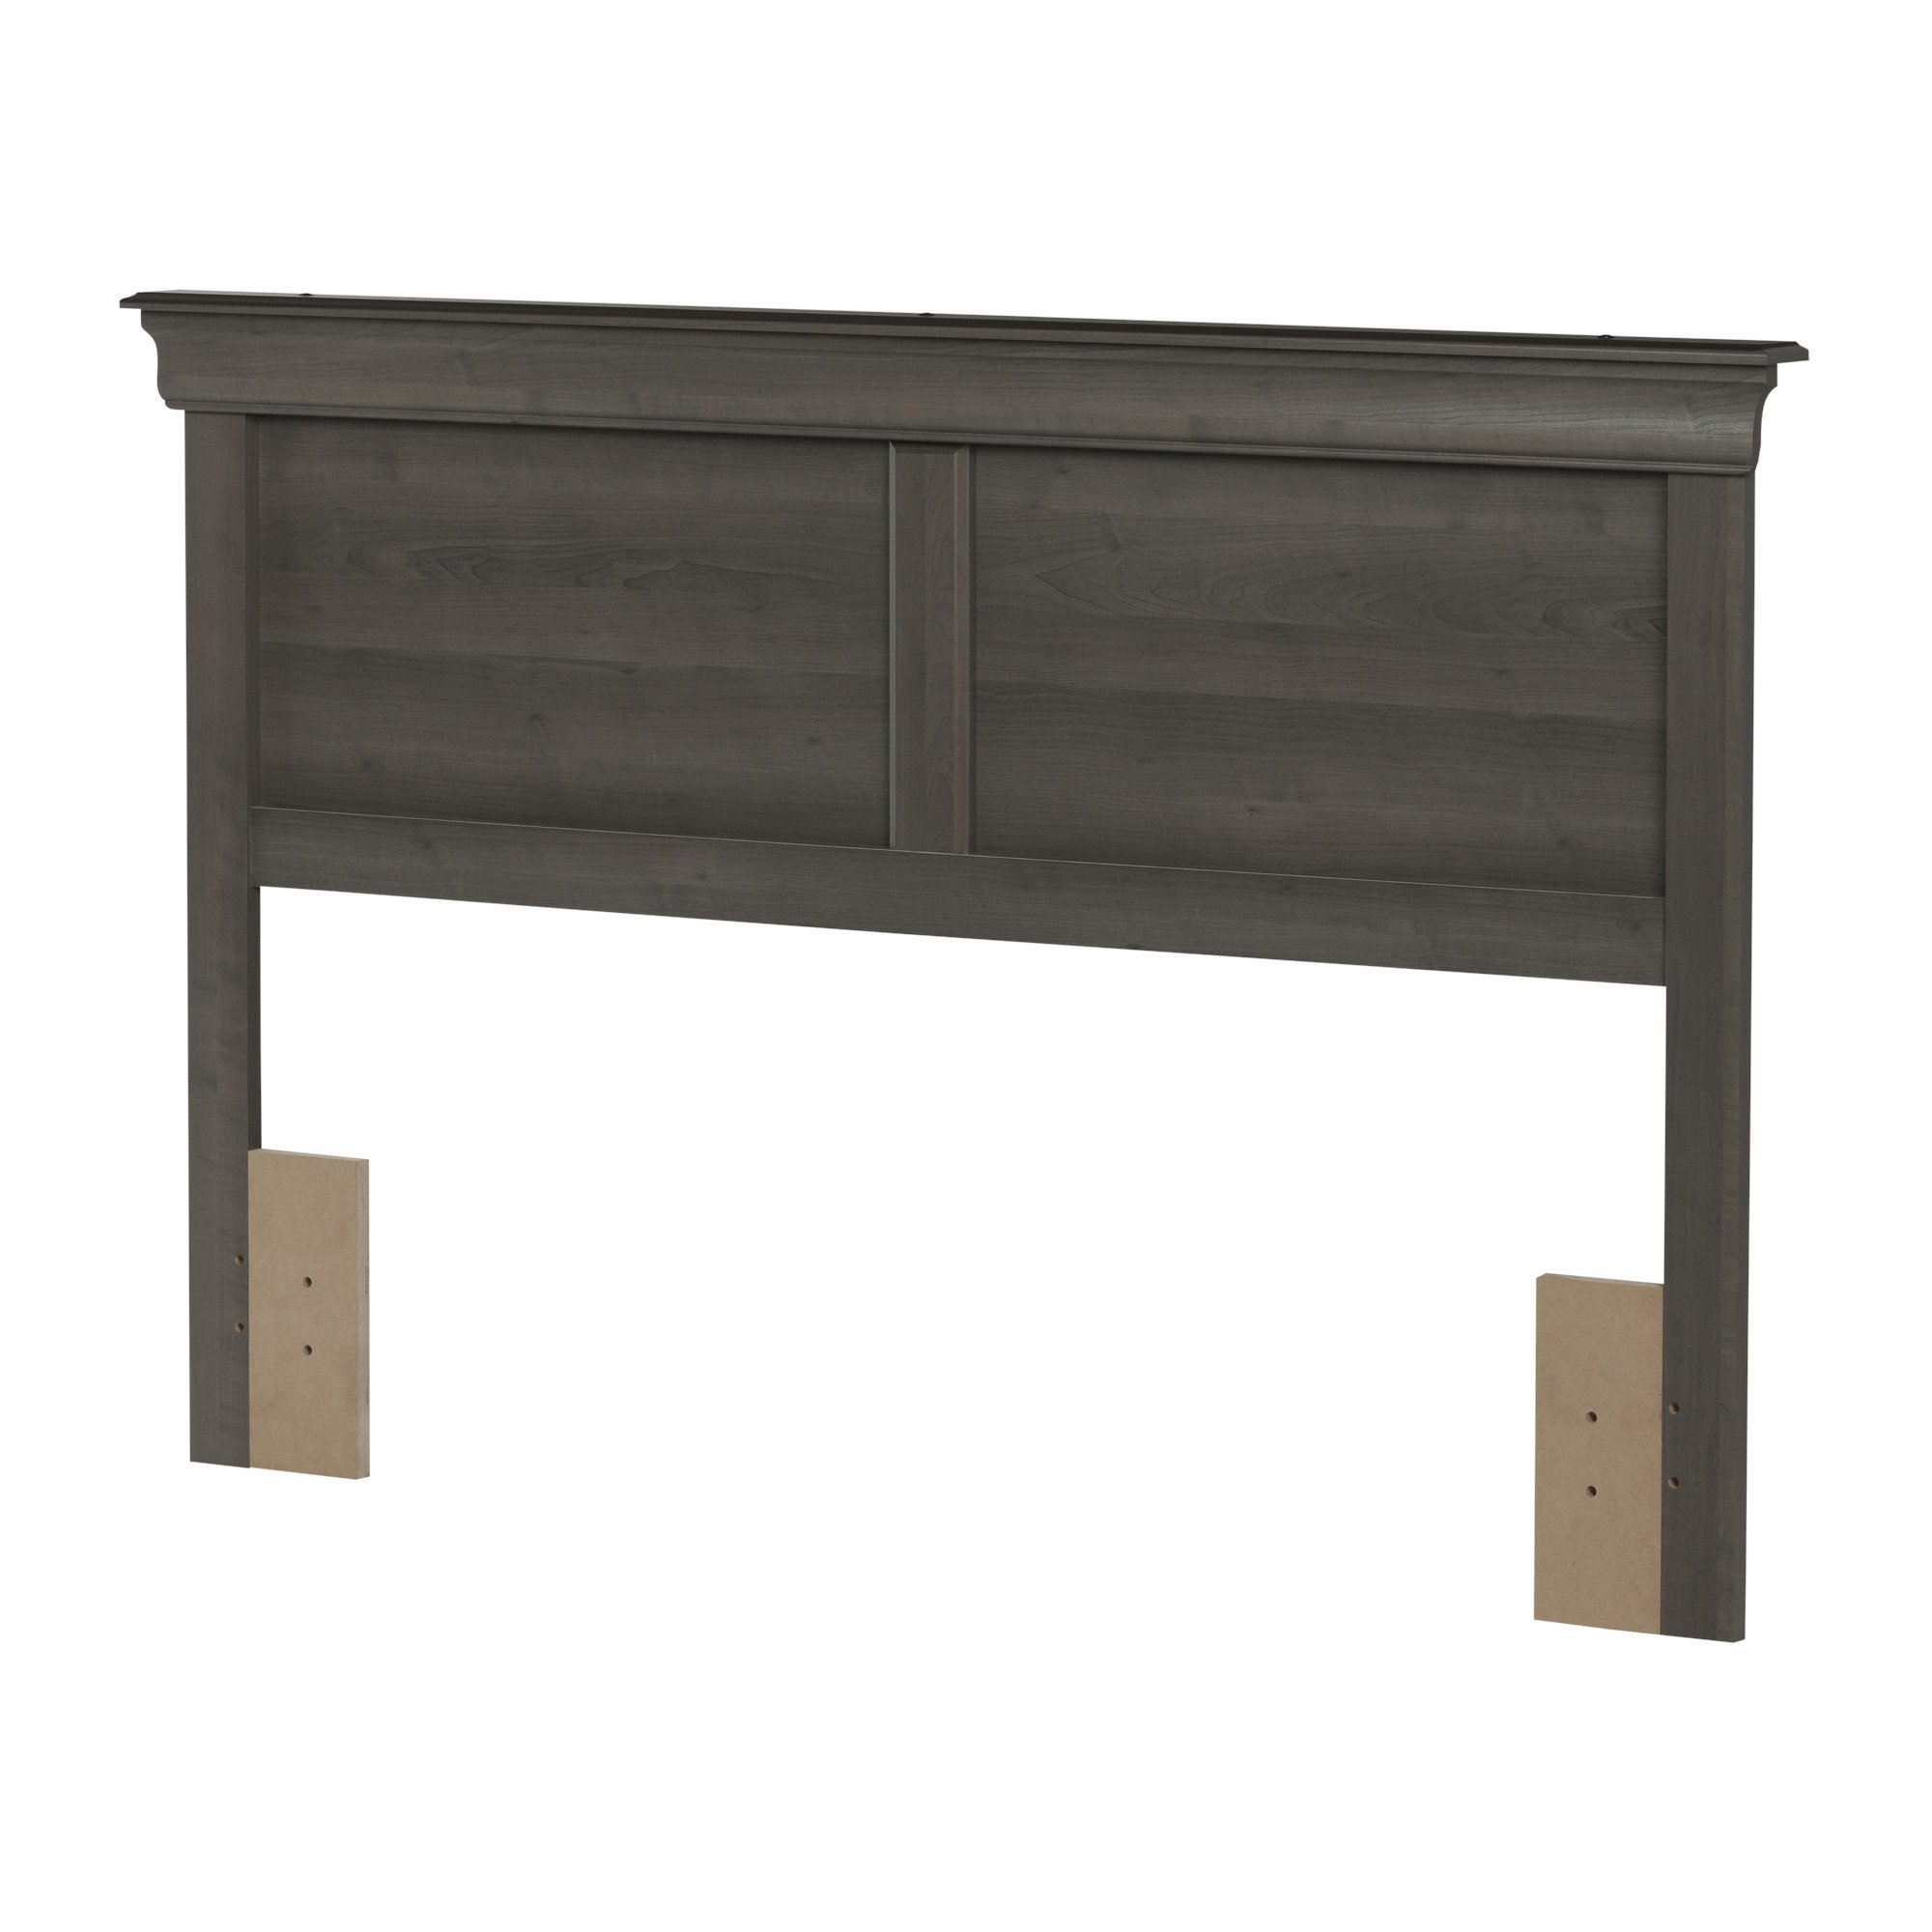 South Shore Vintage Full Queen Headboard in Gray Maple by South Shore